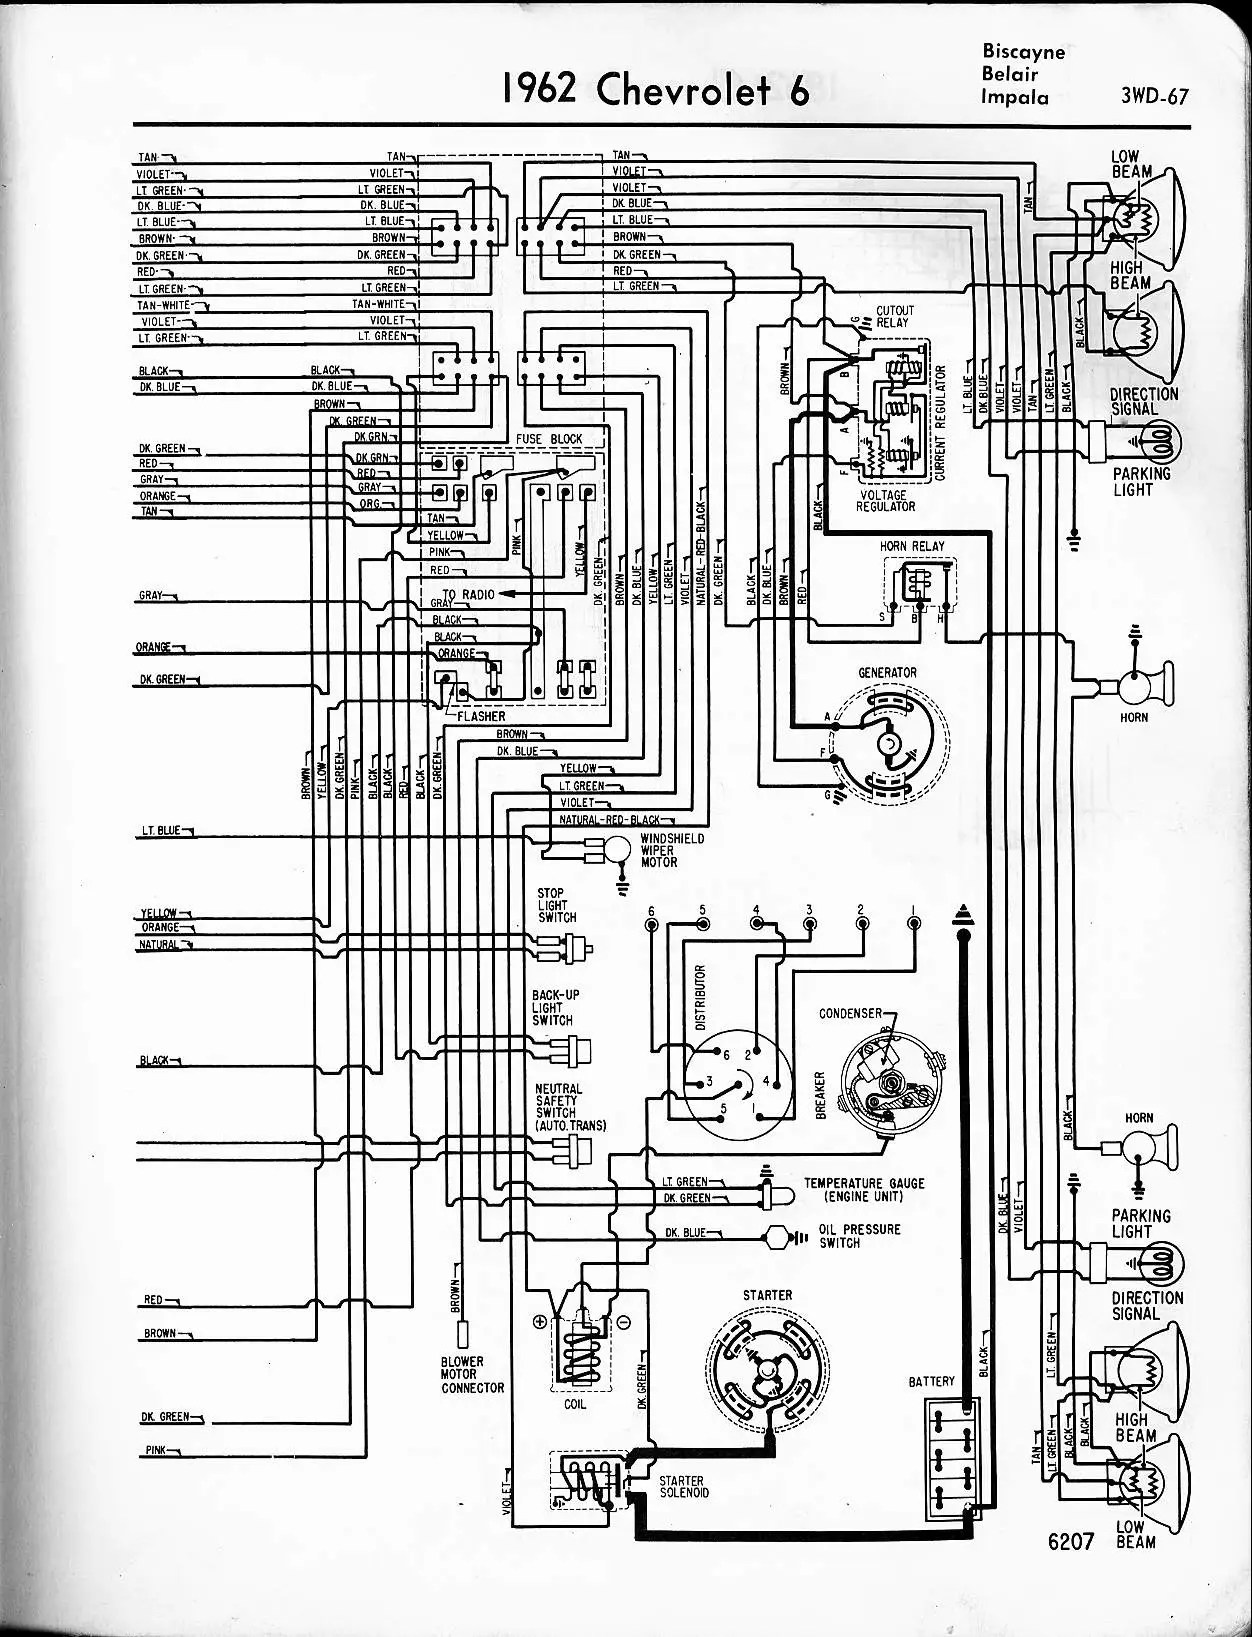 hight resolution of 69 chevrolet impala wiring diagram wiring library rh 46 bloxhuette de 64 chevrolet impala 70 chevrolet impala